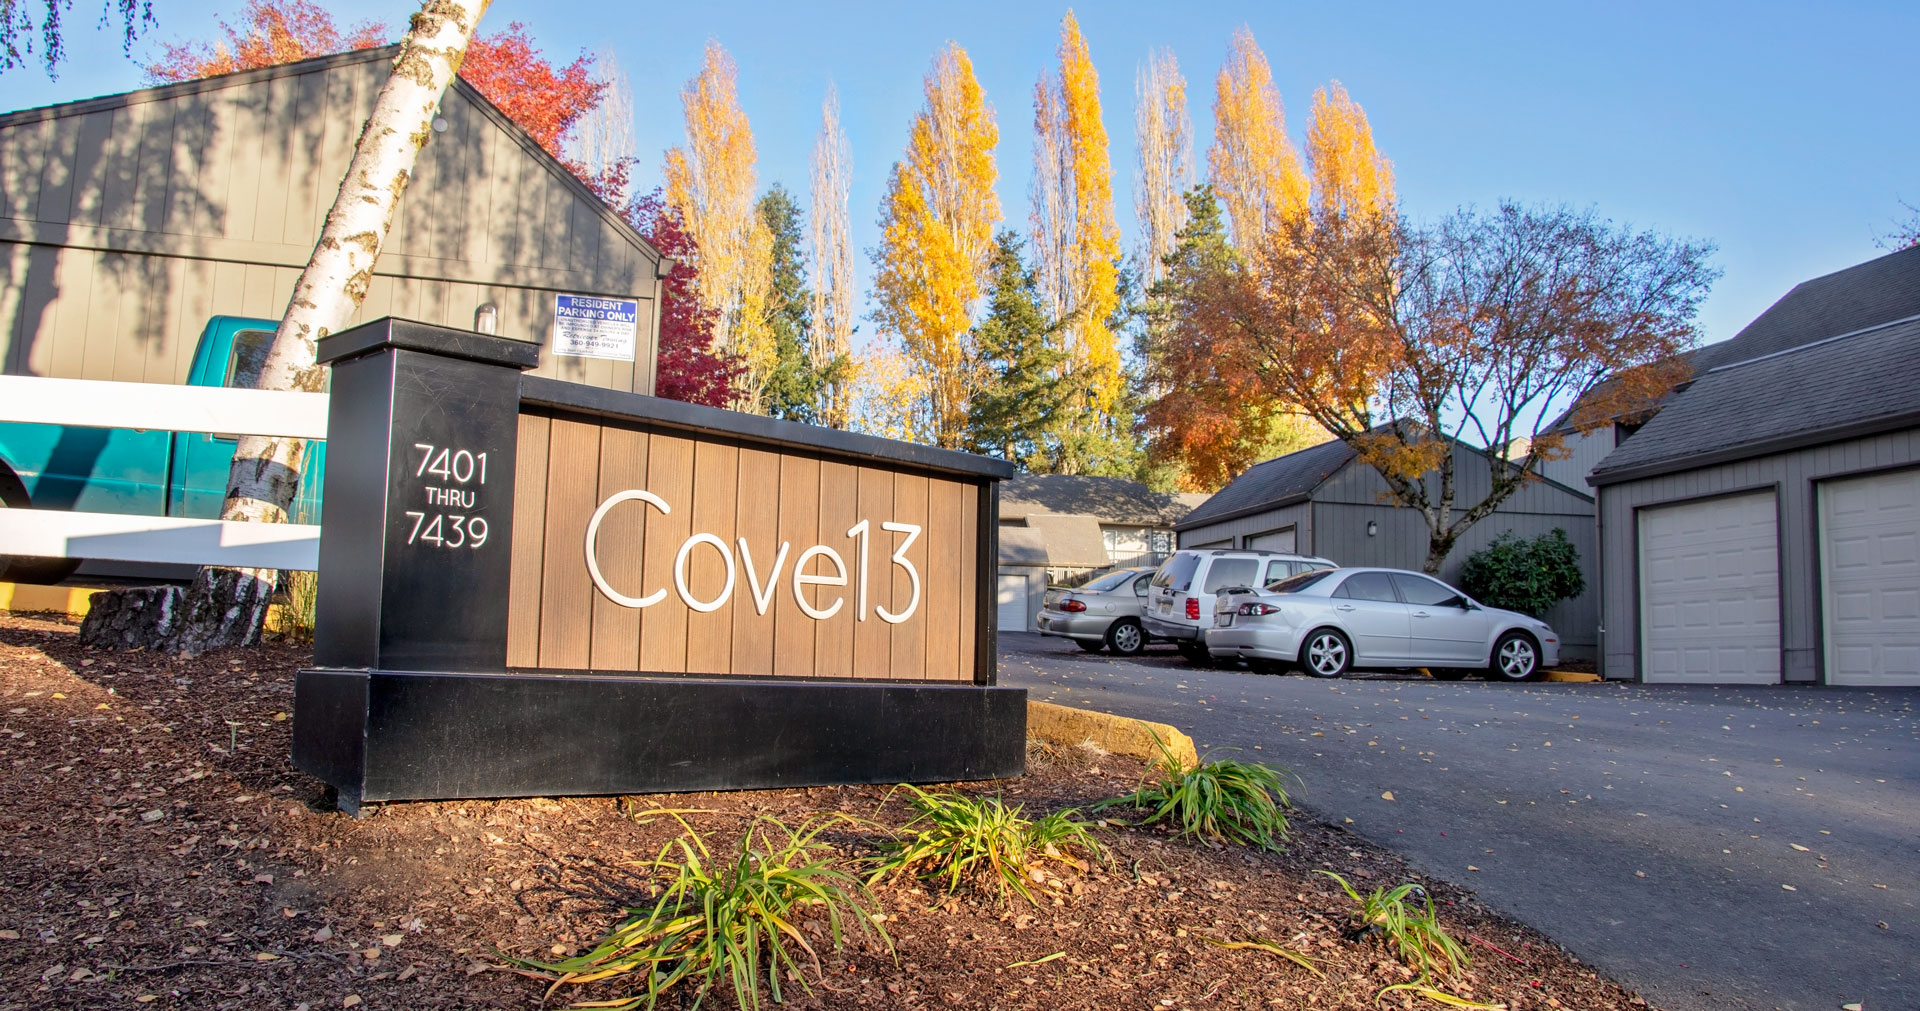 cove-13-sign-cropped